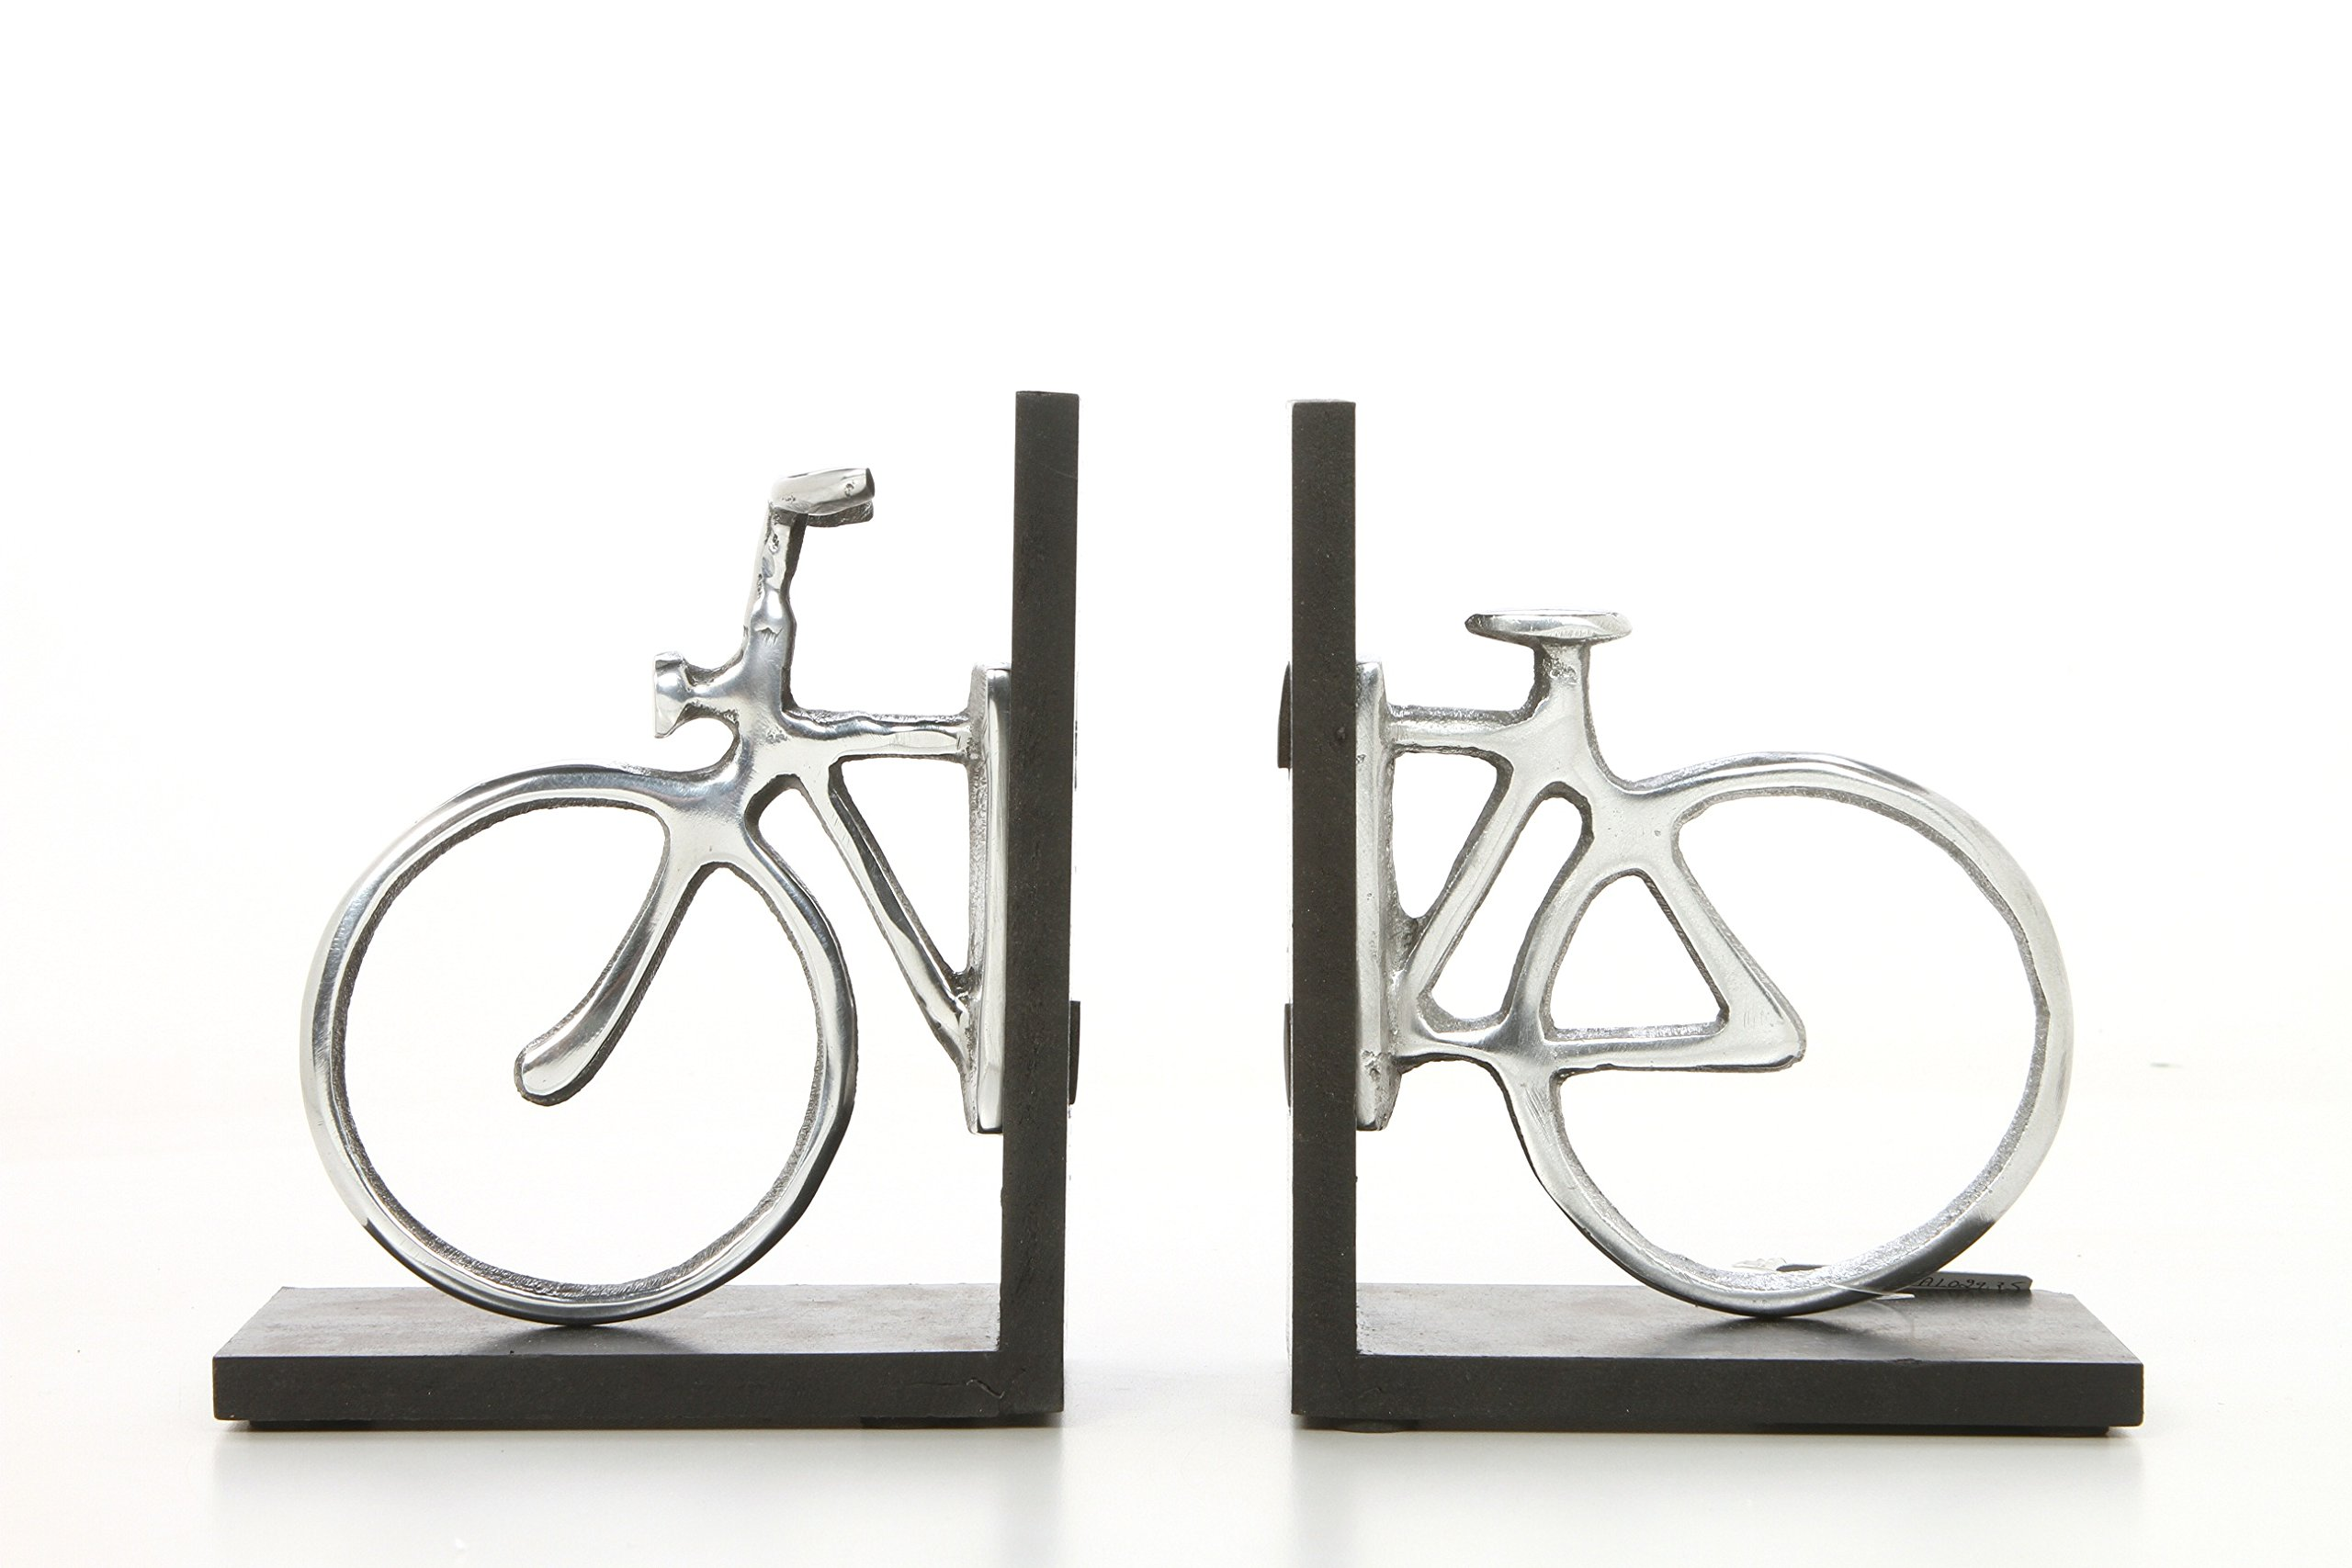 Hosley 6.75'' High, Decorative Tabletop Bicycle Bookends, Silver. Ideal Gift for Wedding, Home, Party Favor, Spa, Reiki, Meditation, Bathroom Settings P1